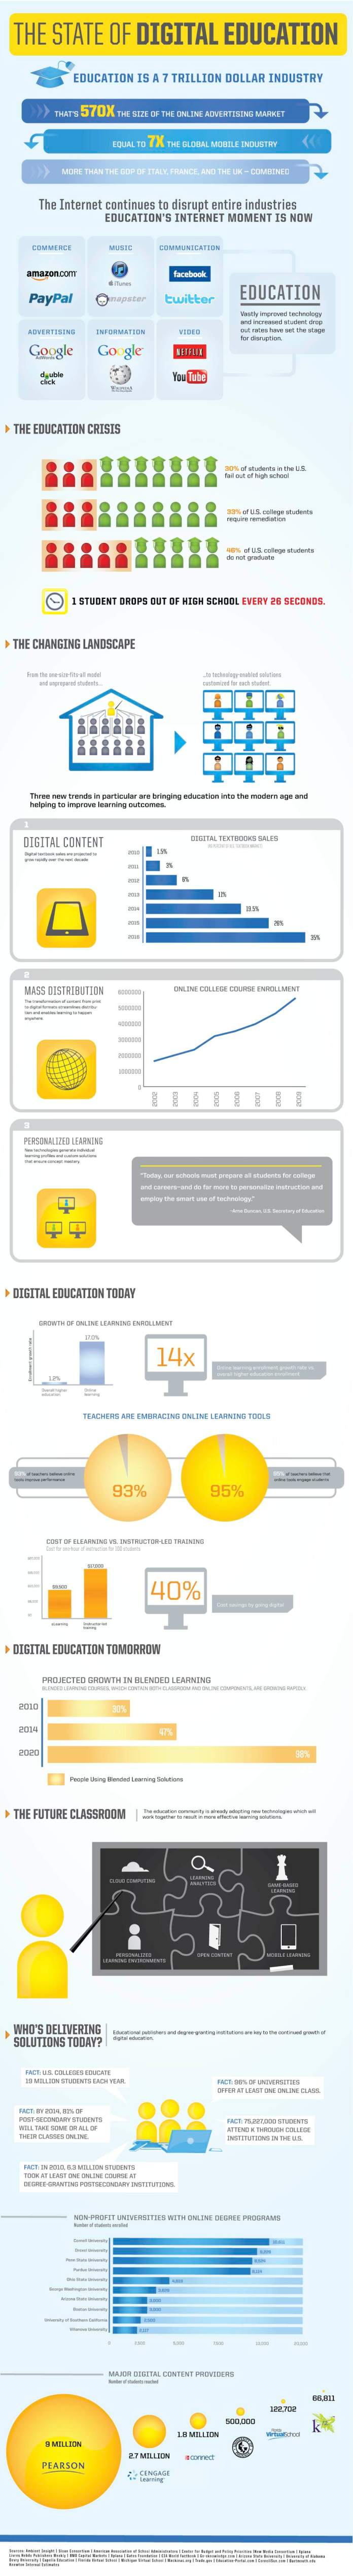 state-of-digital-education